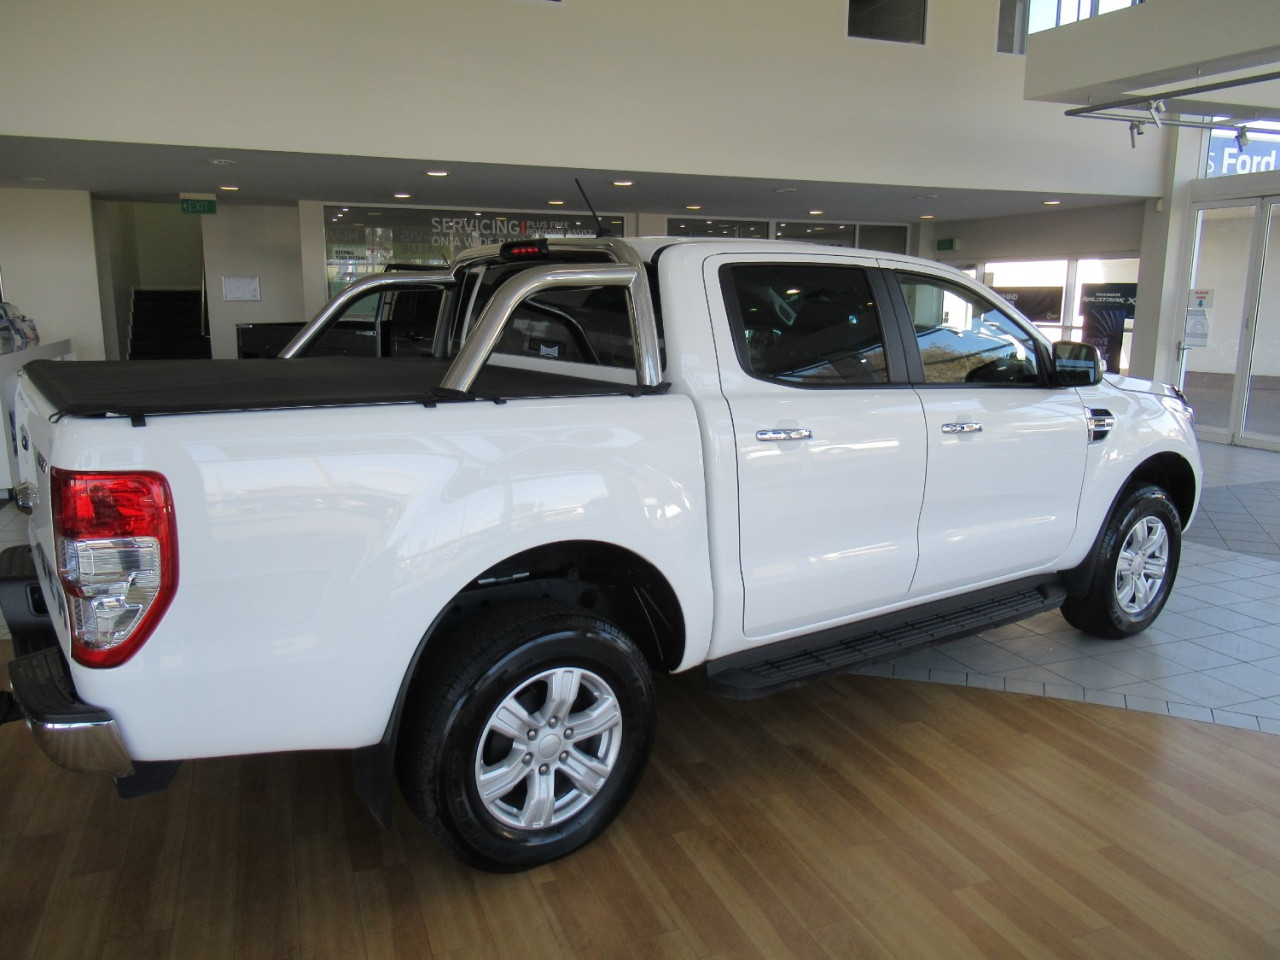 2019 MY19.75 Ford Ranger PX MkIII 4x2 XLT Double Cab Pick-up Hi-Rider Utility Image 11